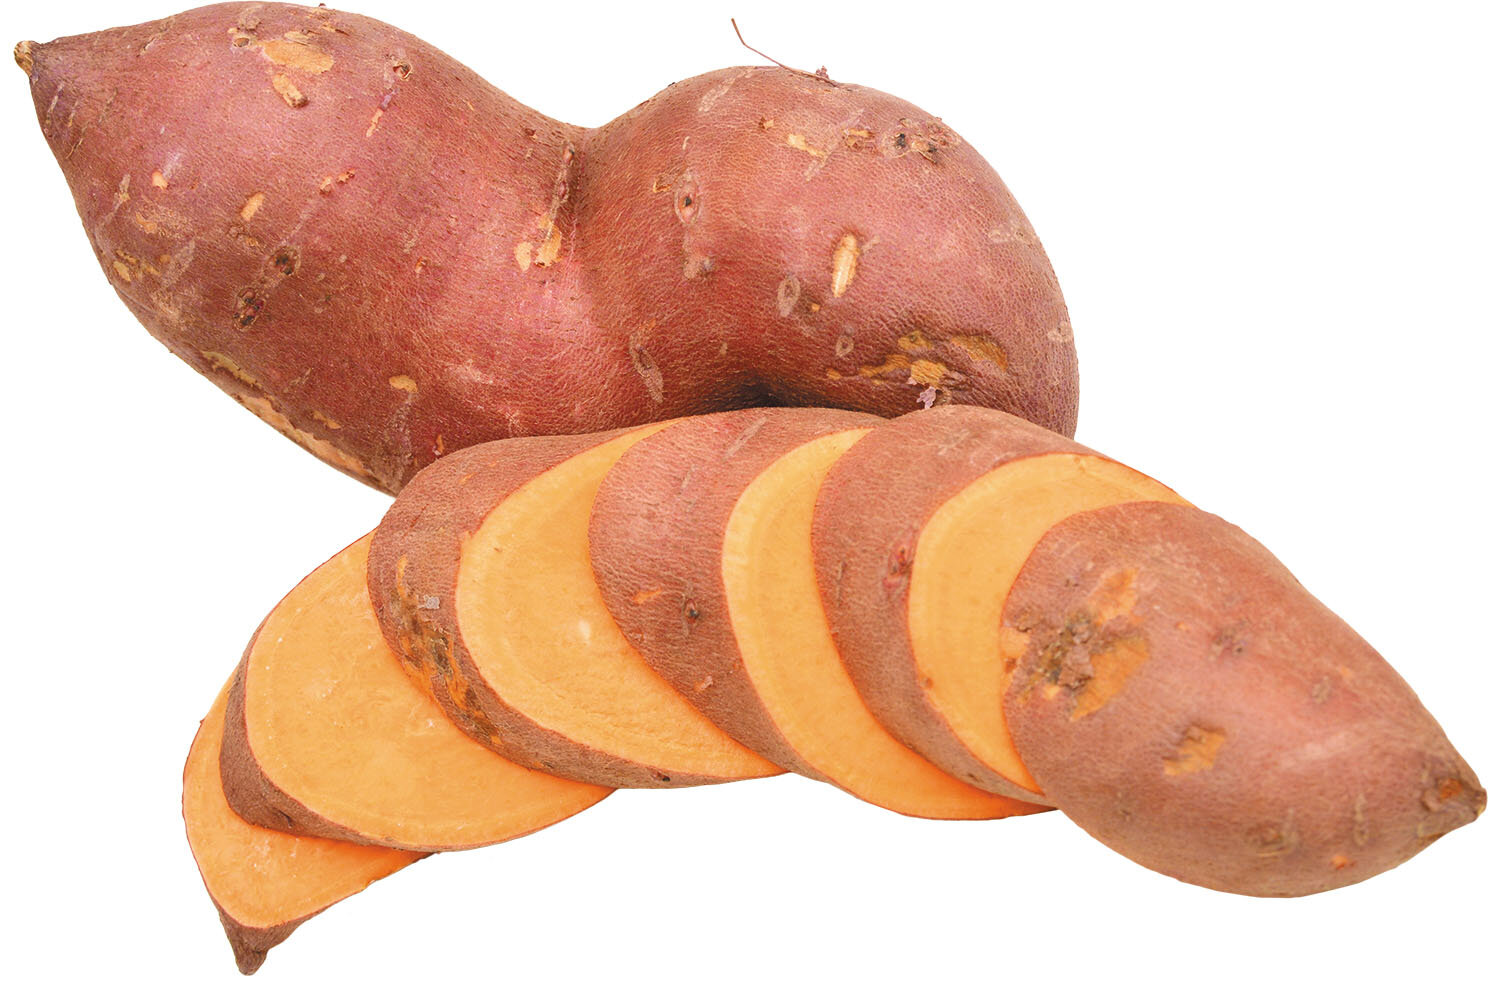 Even raw, sweet potatoes are great snacks for dogs. At Wags to Wiskers we get them from a local southeast Michigan farmer! Ask about them.